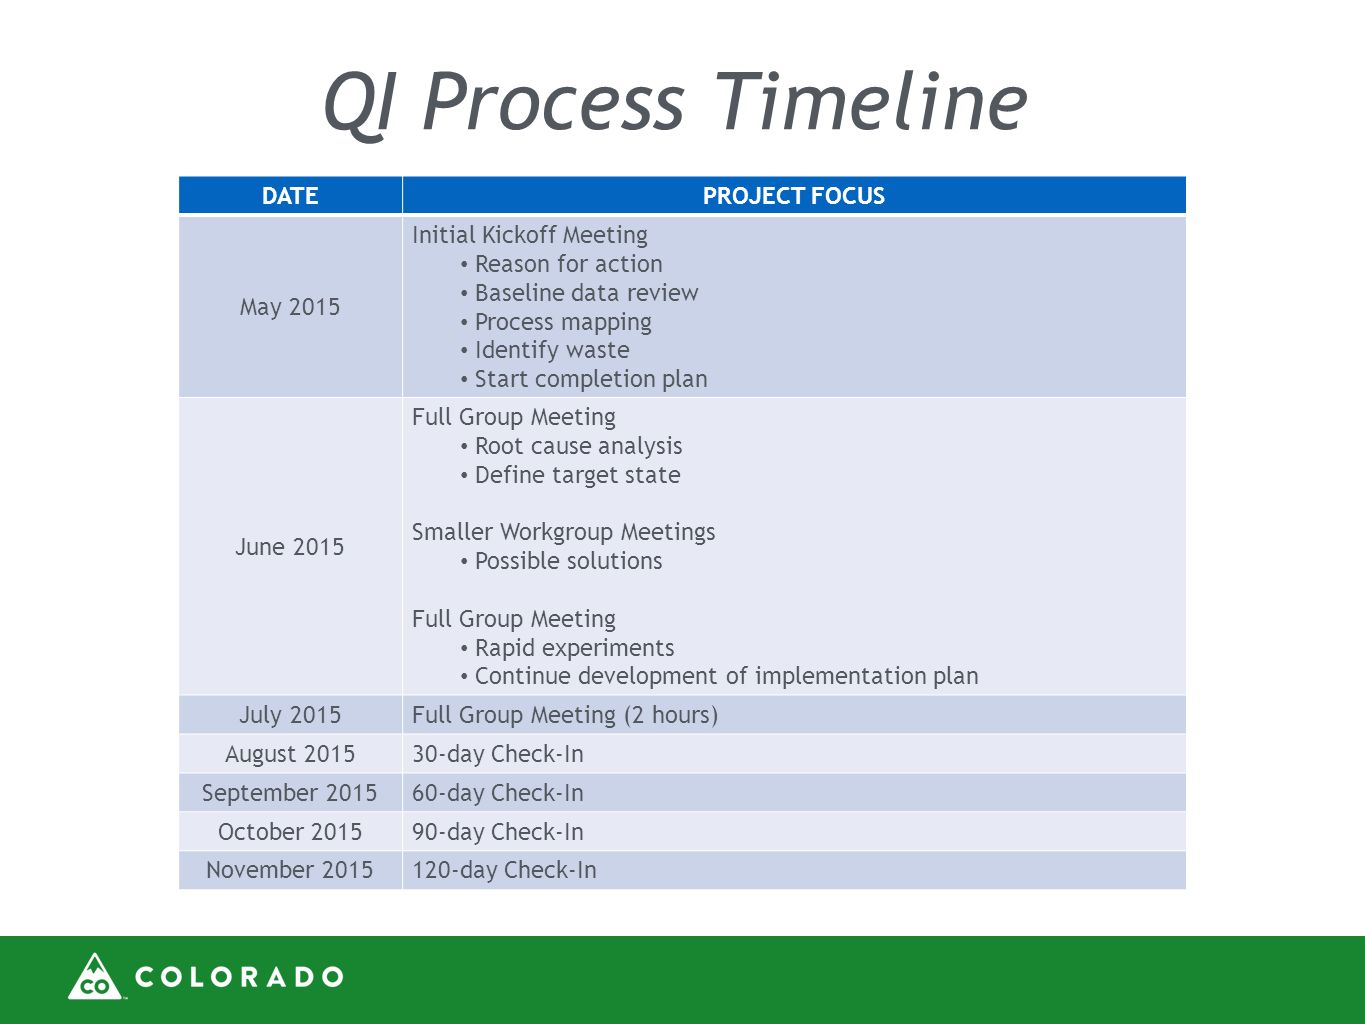 qi process plan essay Qi plan iv implementing and revising name course instructor institution date qi plan iv implementing and revising qi plan iv implementing and revising quality i.